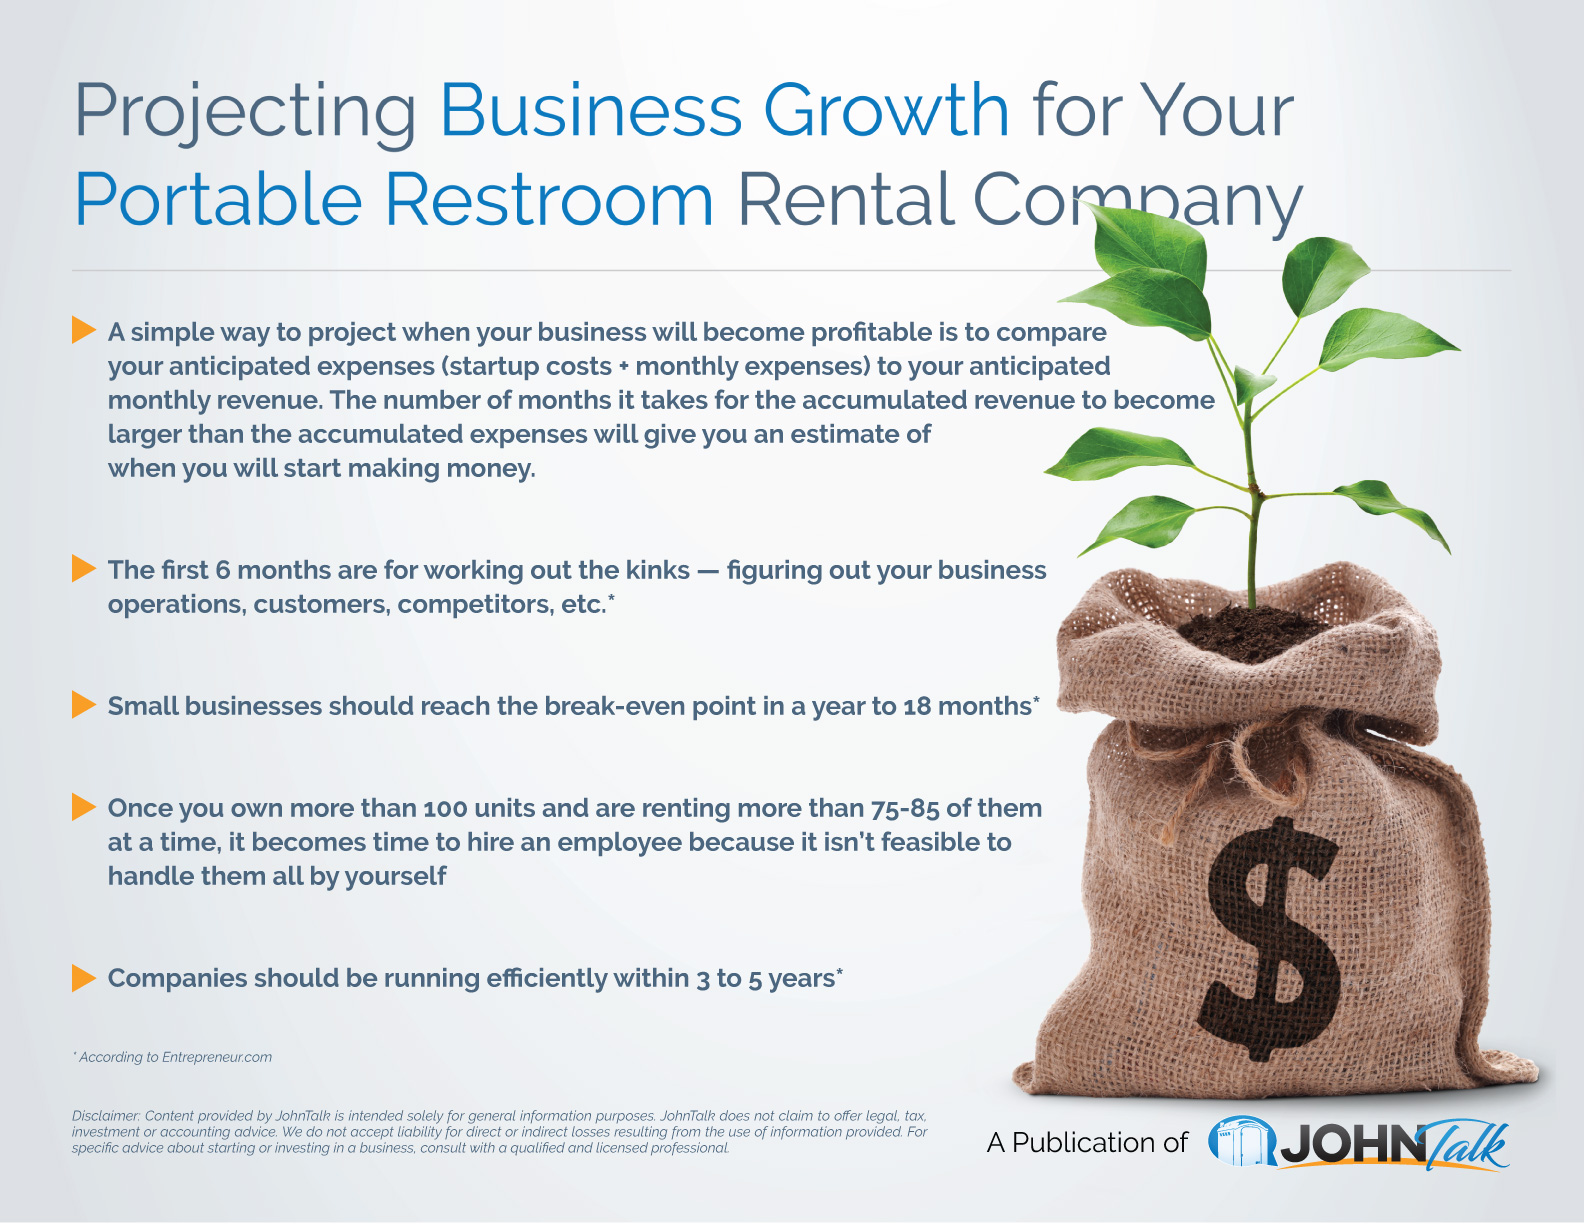 Projecting Business Growth for Your Portable Restroom Rental Company